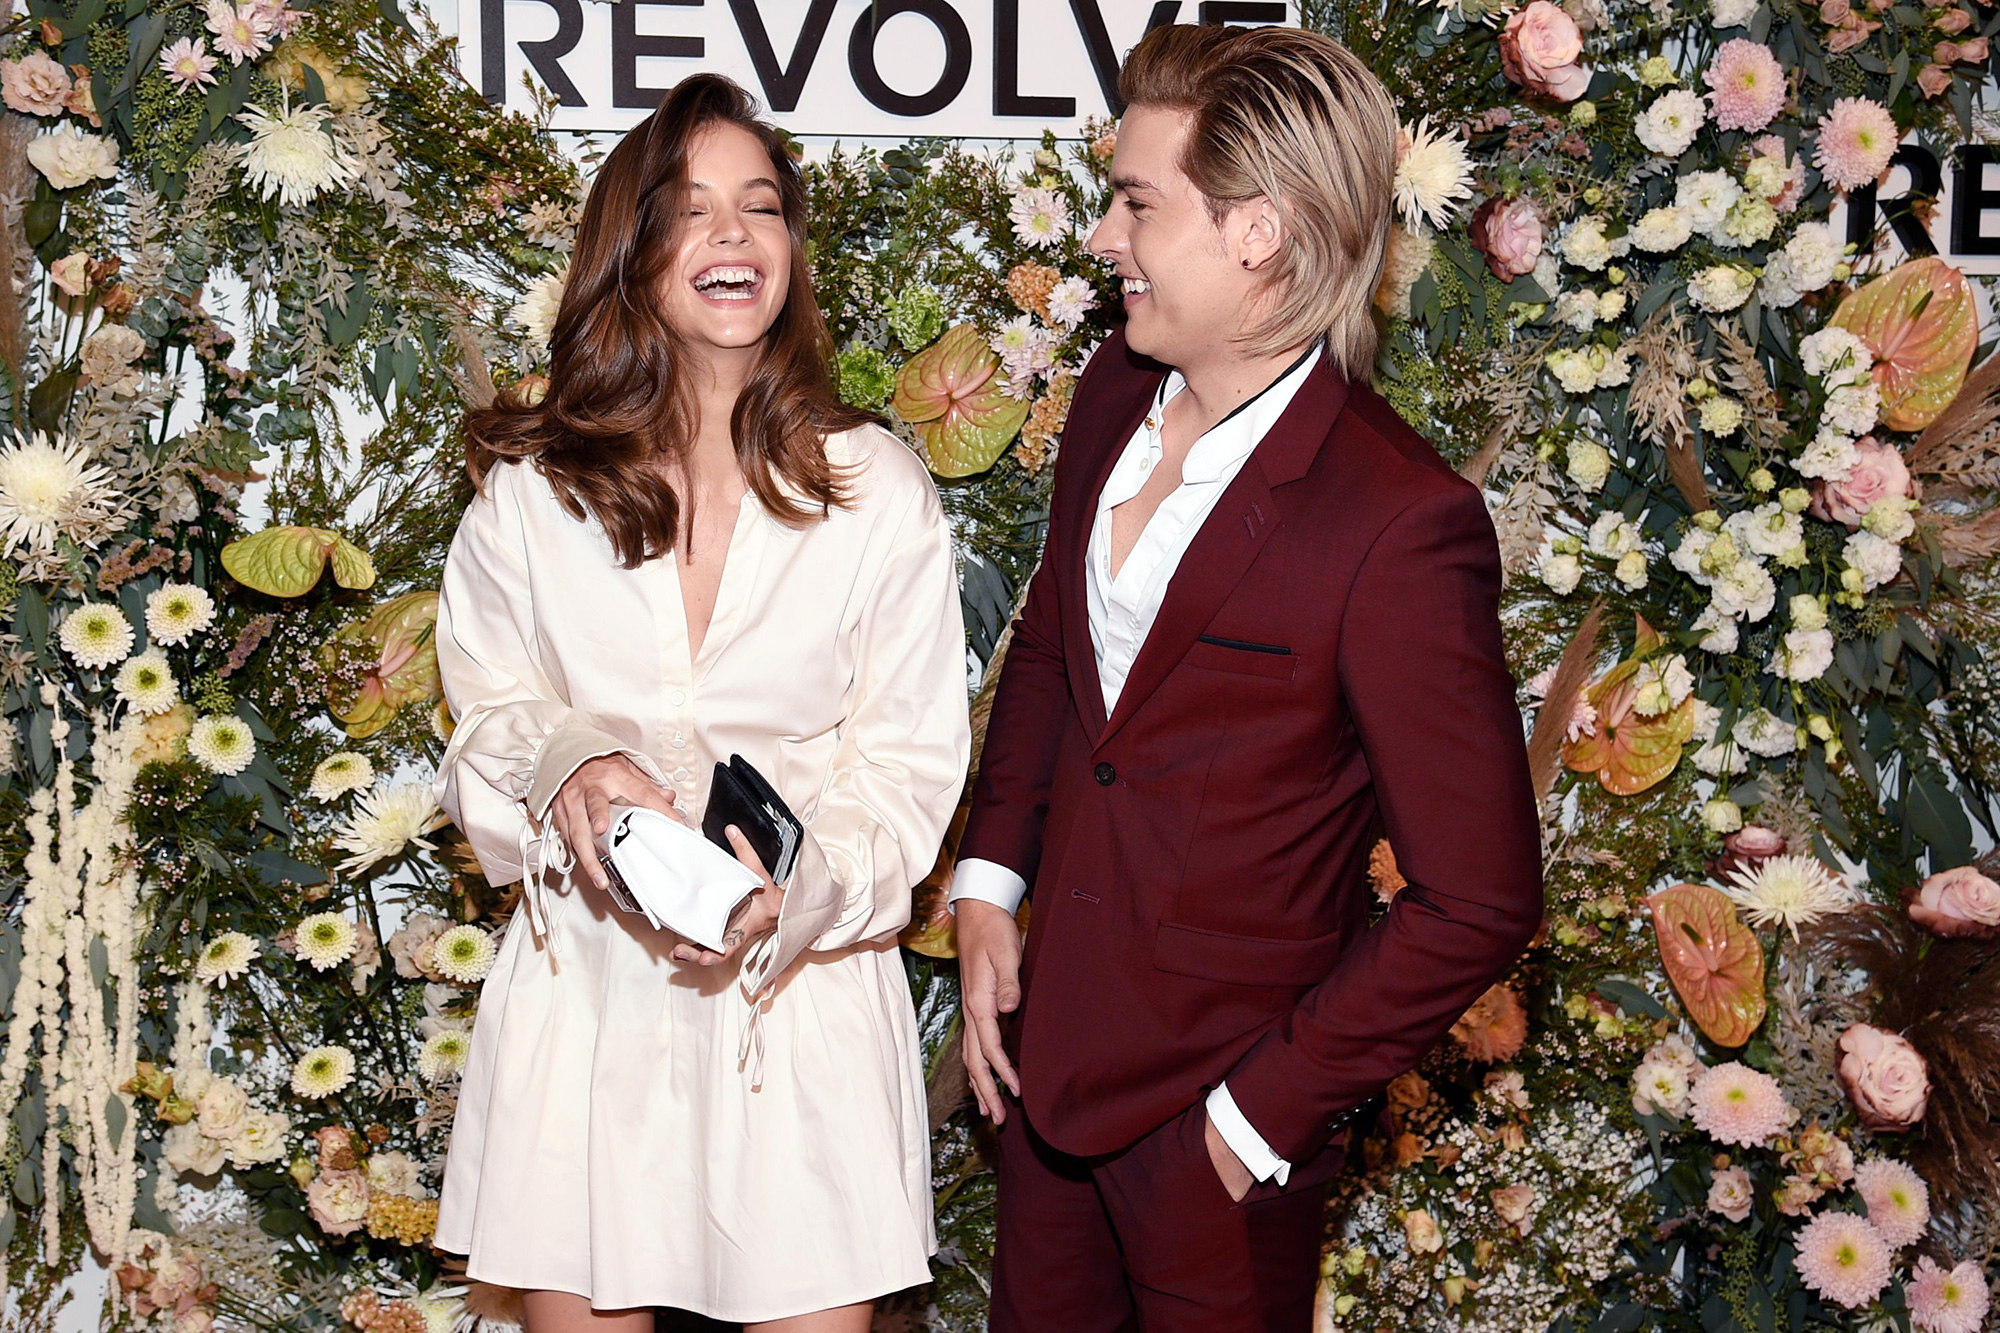 Barbara Palvin, left, and Dylan Sprouse attend the Revolve Gallery New York Fashion Week event at Hudson Yards, in New York Revolve Gallery NYFW Event, New York, United States - 09 Sep 2021